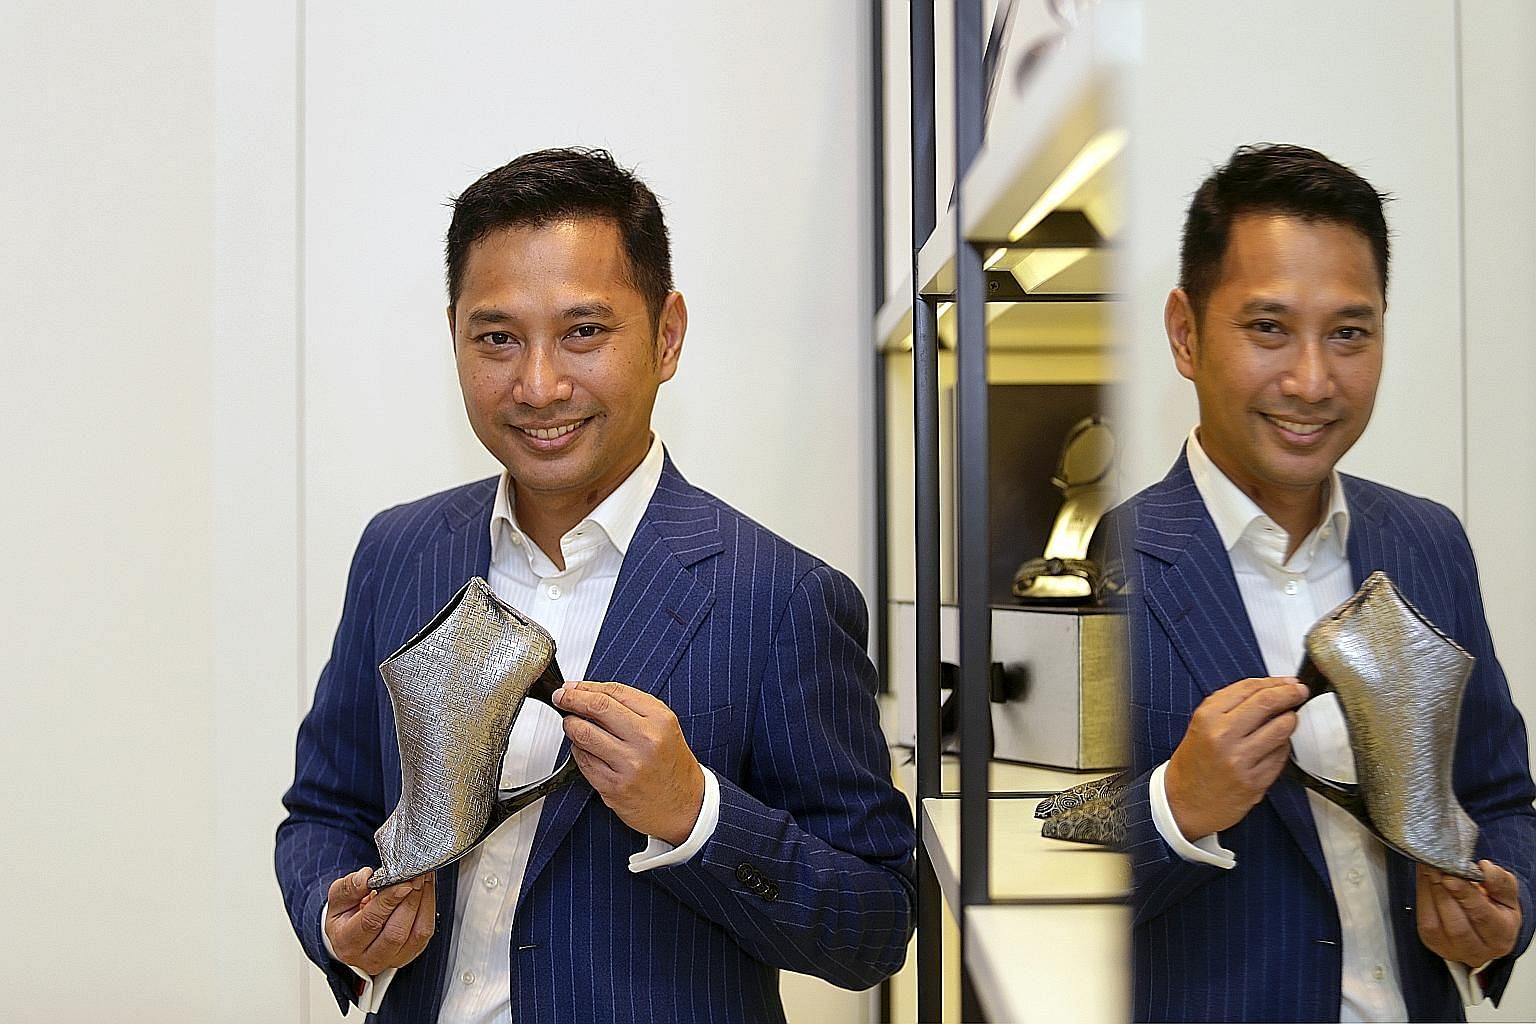 Former documentary film-maker Mashizan Masjum says his shoe designs are inspired by the programmes he has produced.